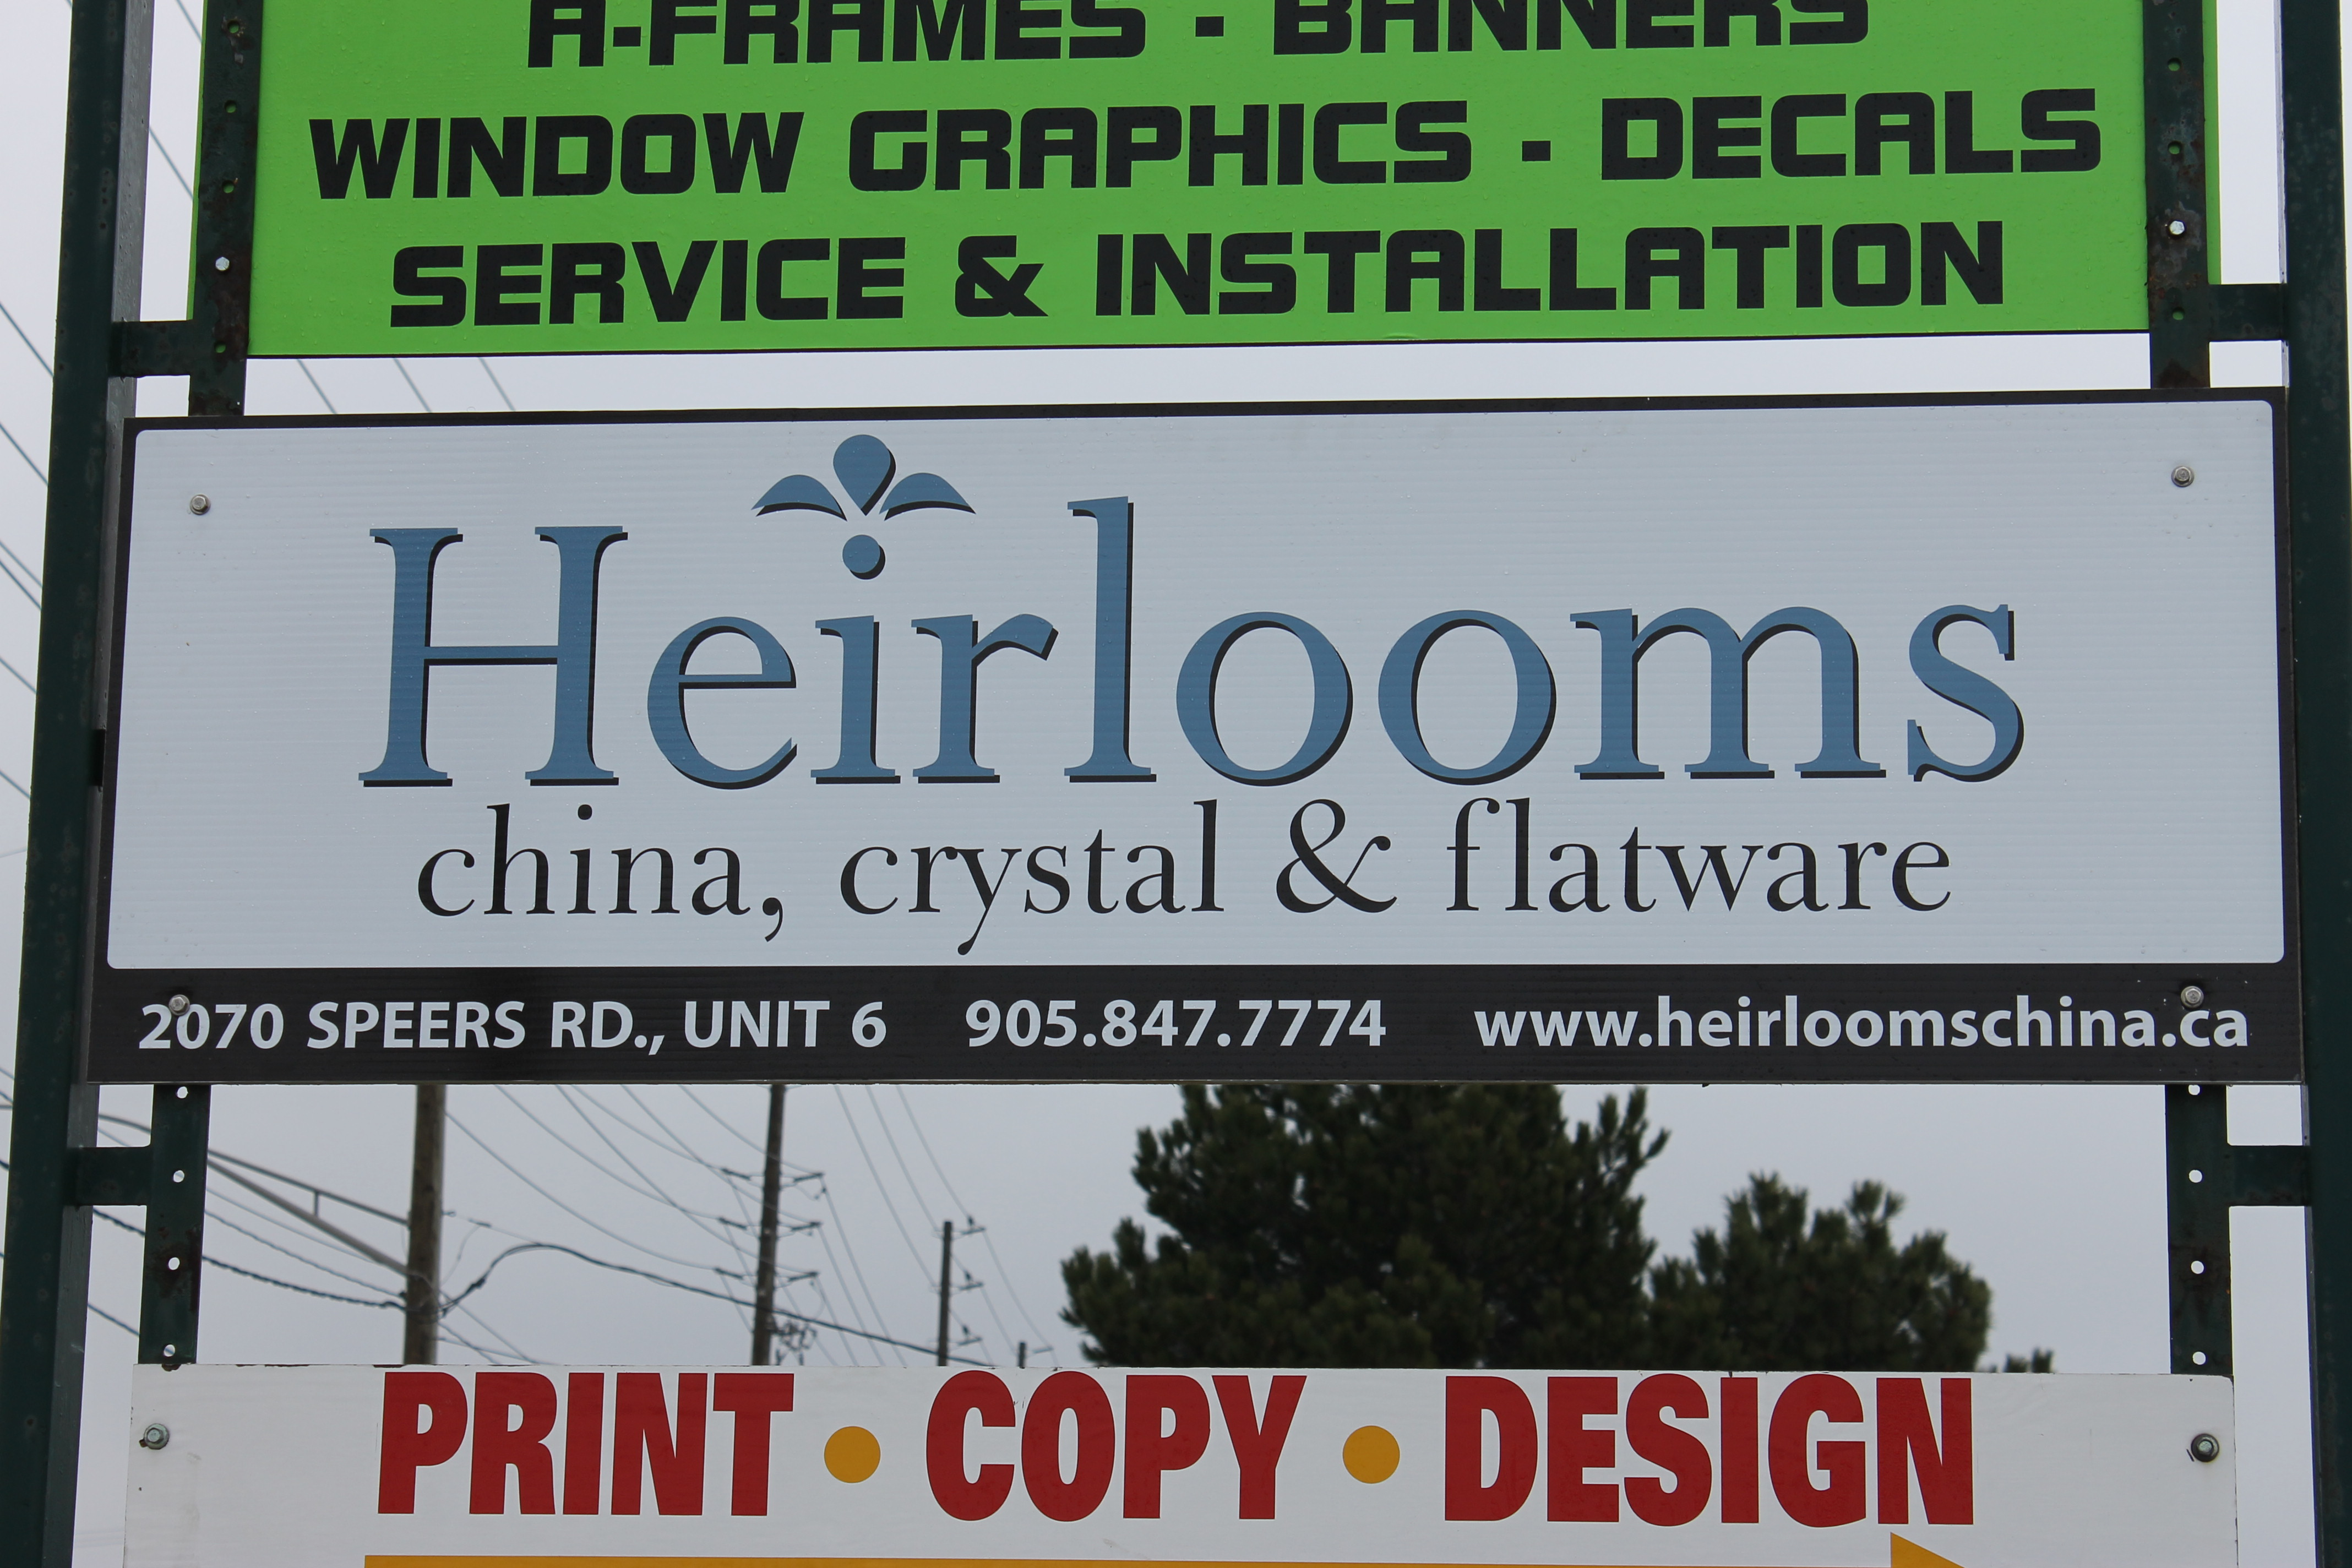 Heirlooms China